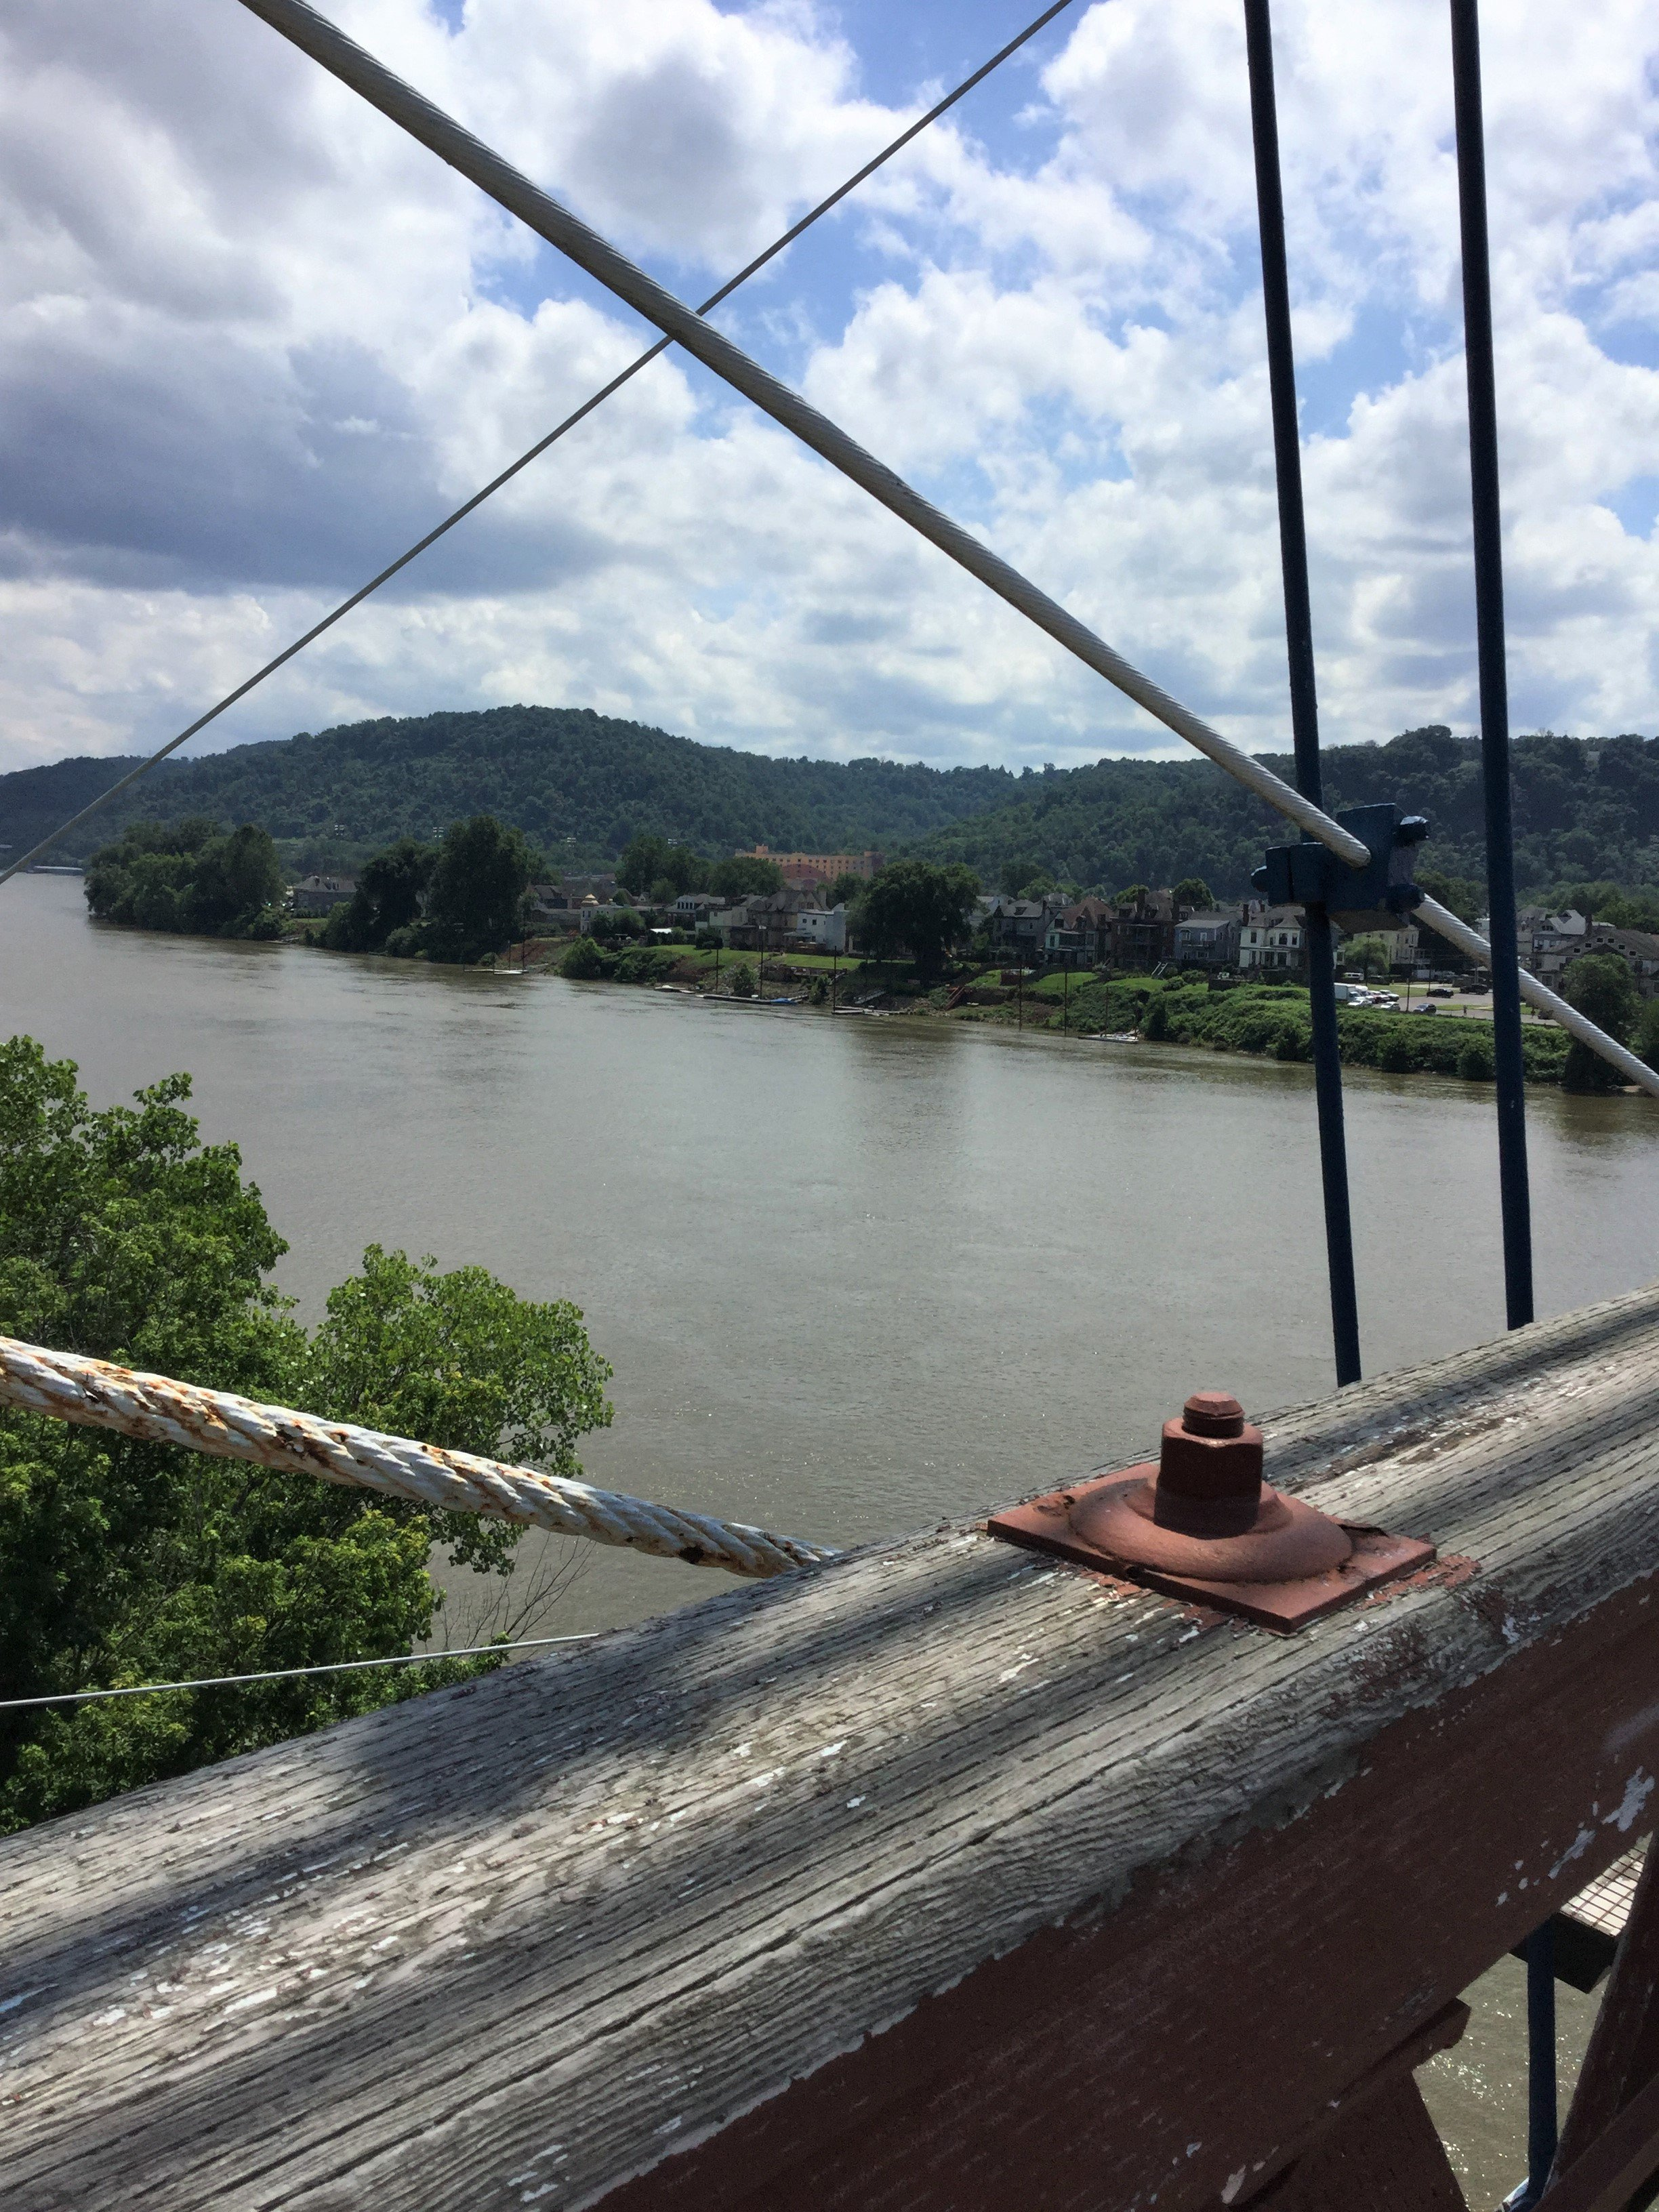 A view of Wheeling Island from the bridge, looking across the Ohio River.